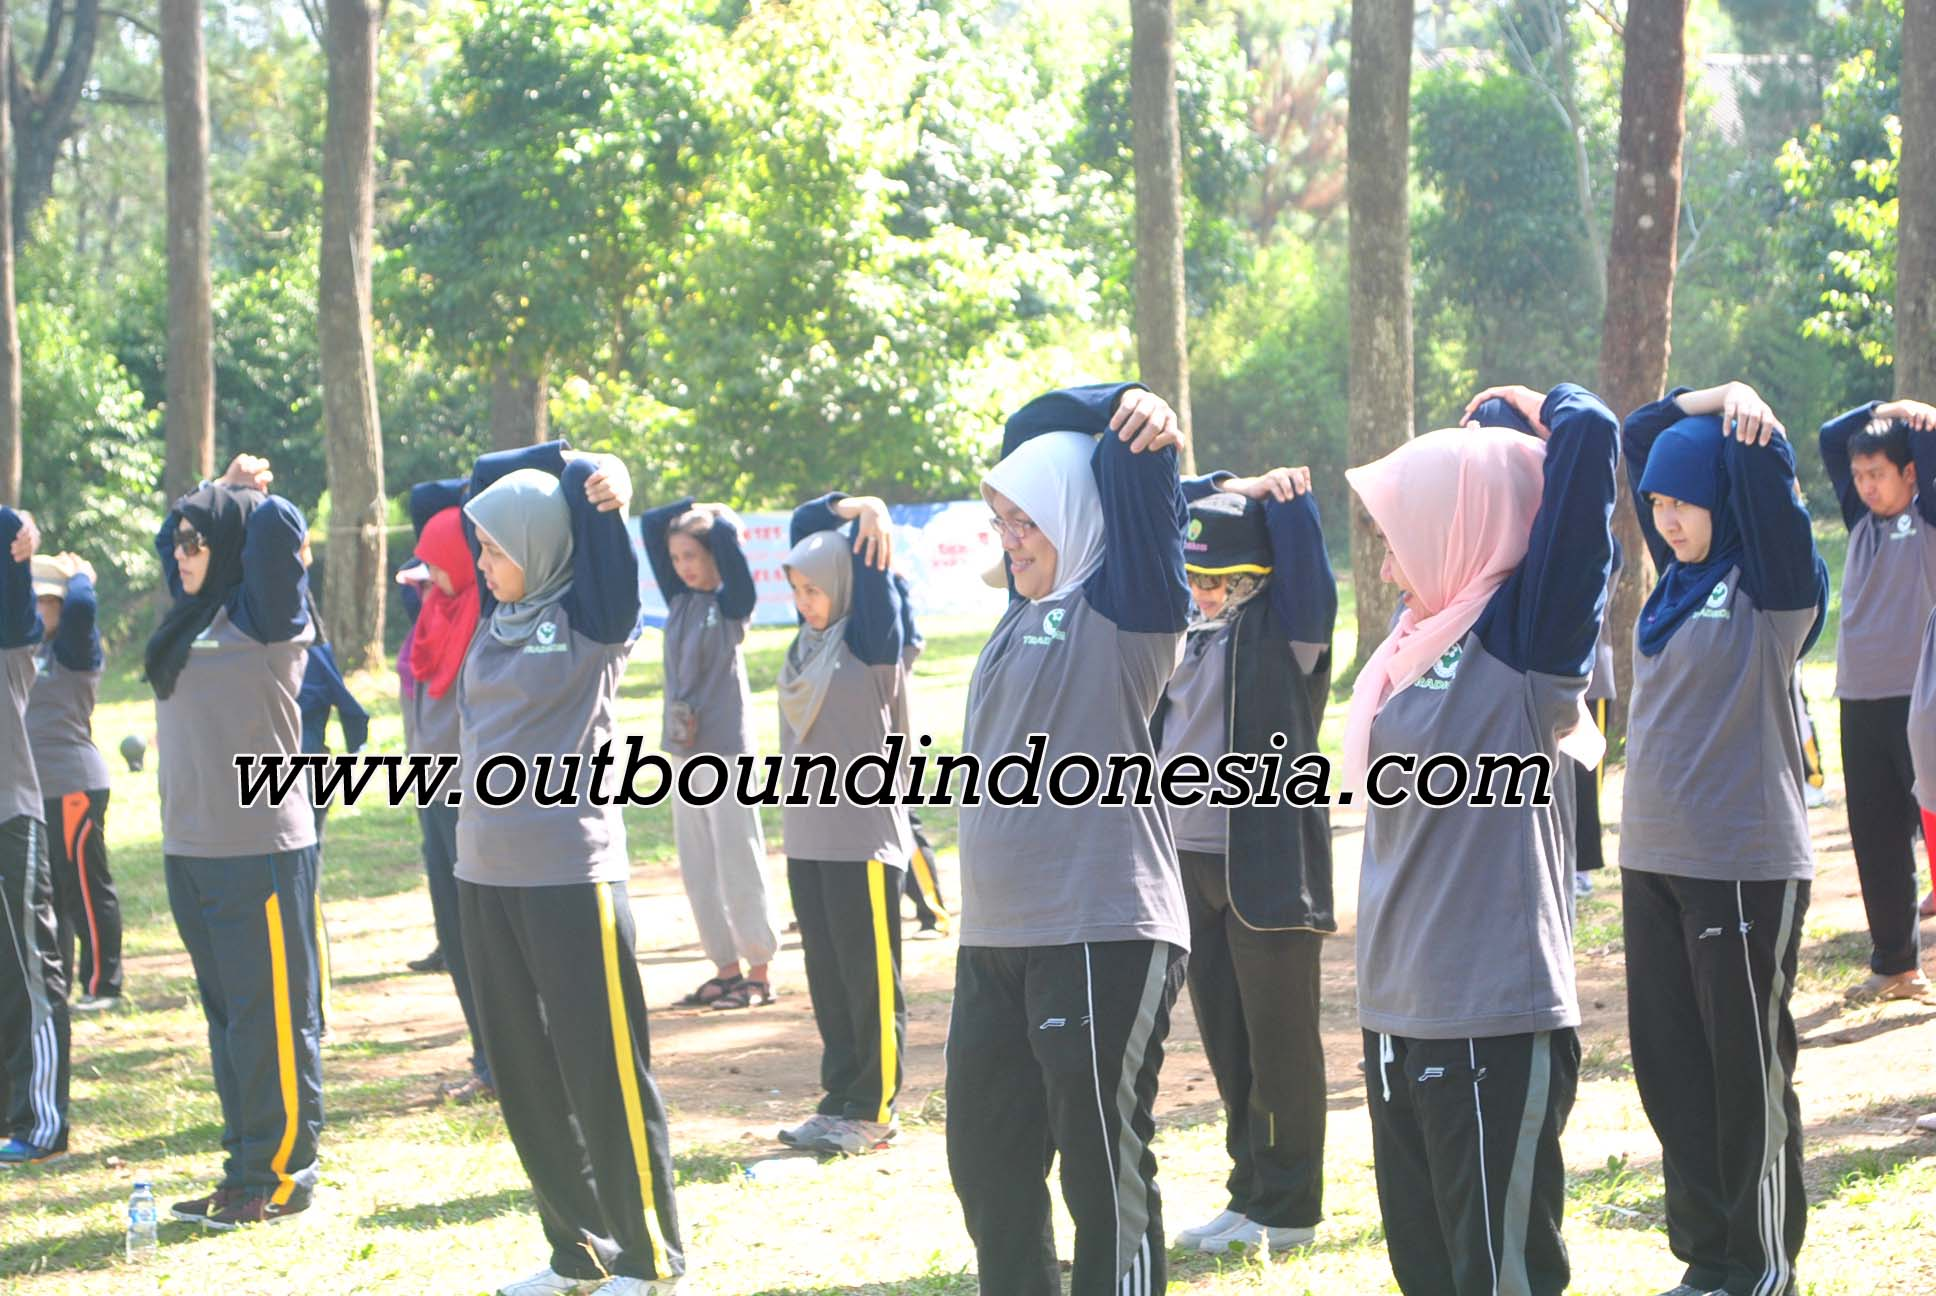 outbound kementrian kesehatan jakarta, www.outboundindonesia.com, 082231080521